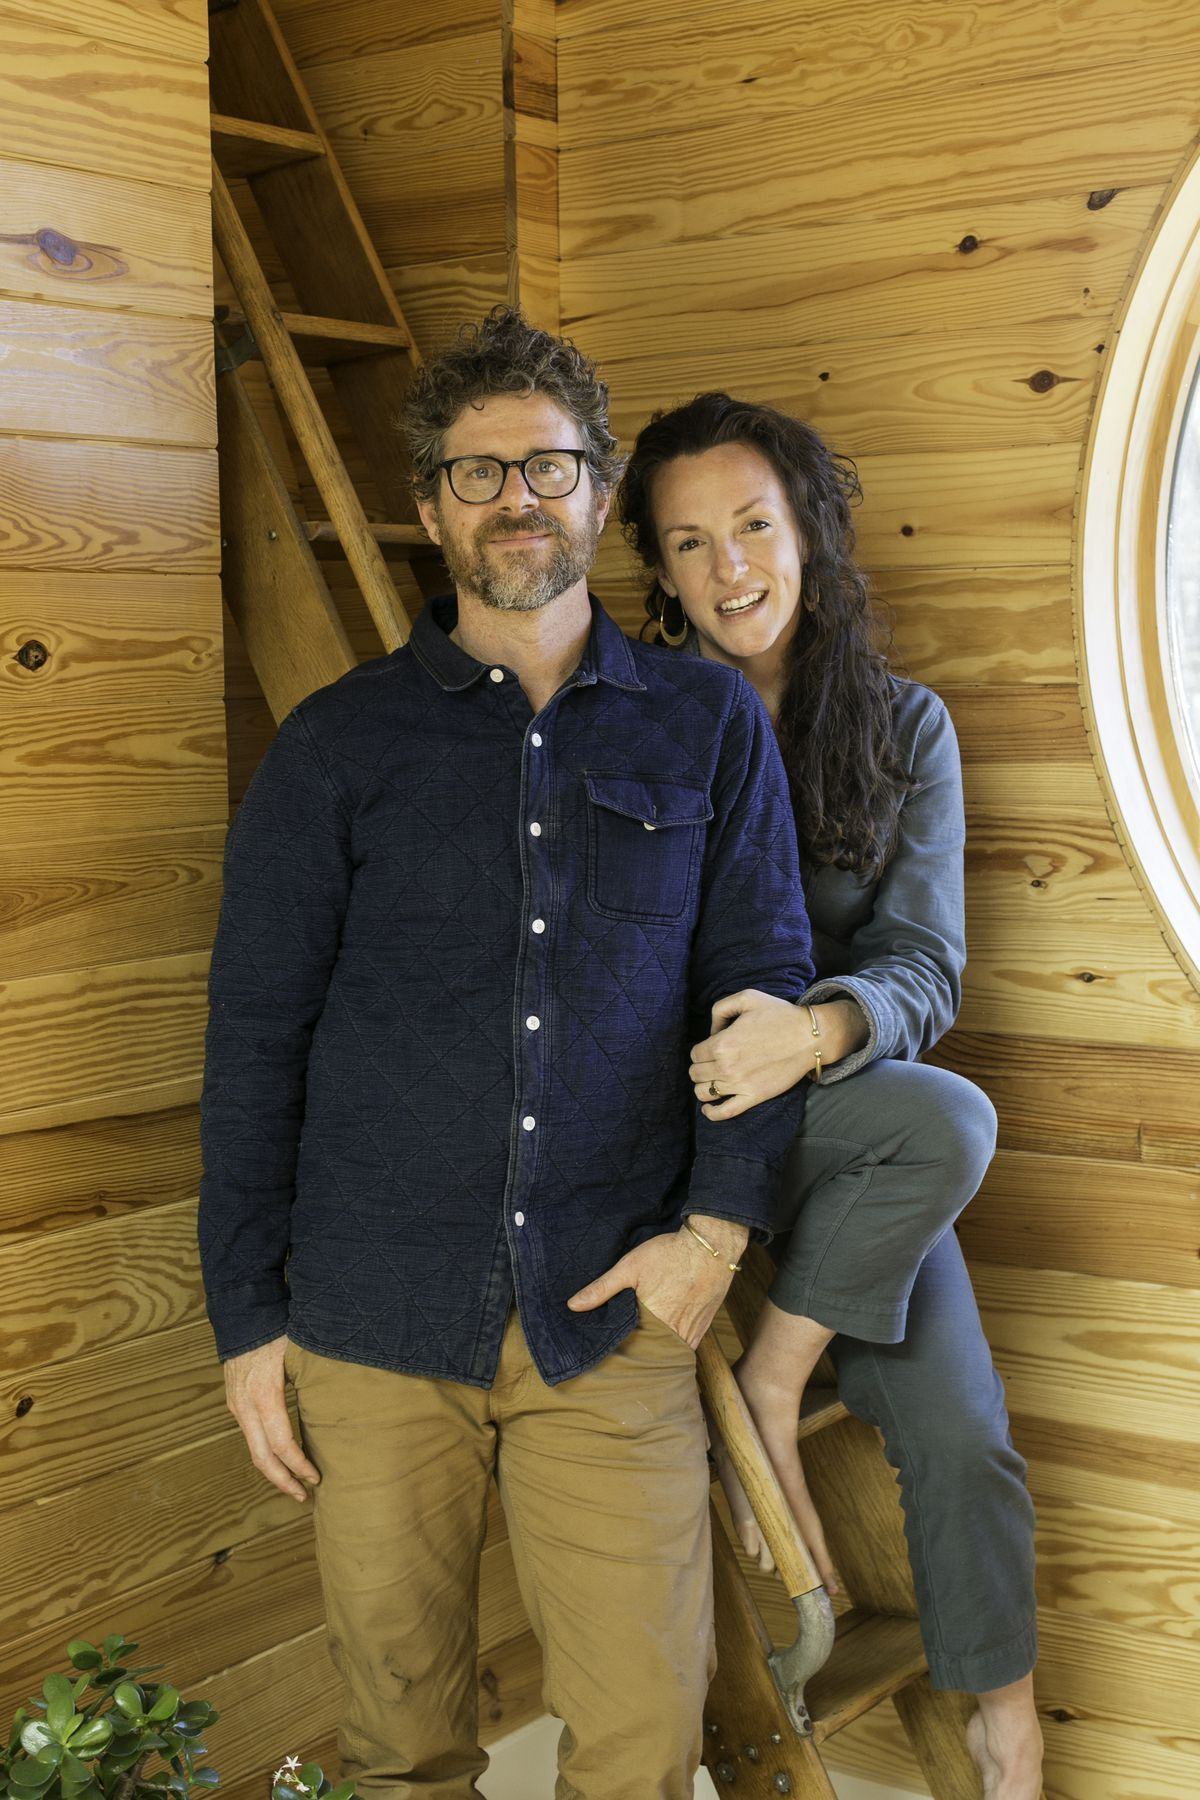 Ross Smith and Anna Welton, the homeowners, in the foyer of their home, paneled wood, and a circular window.